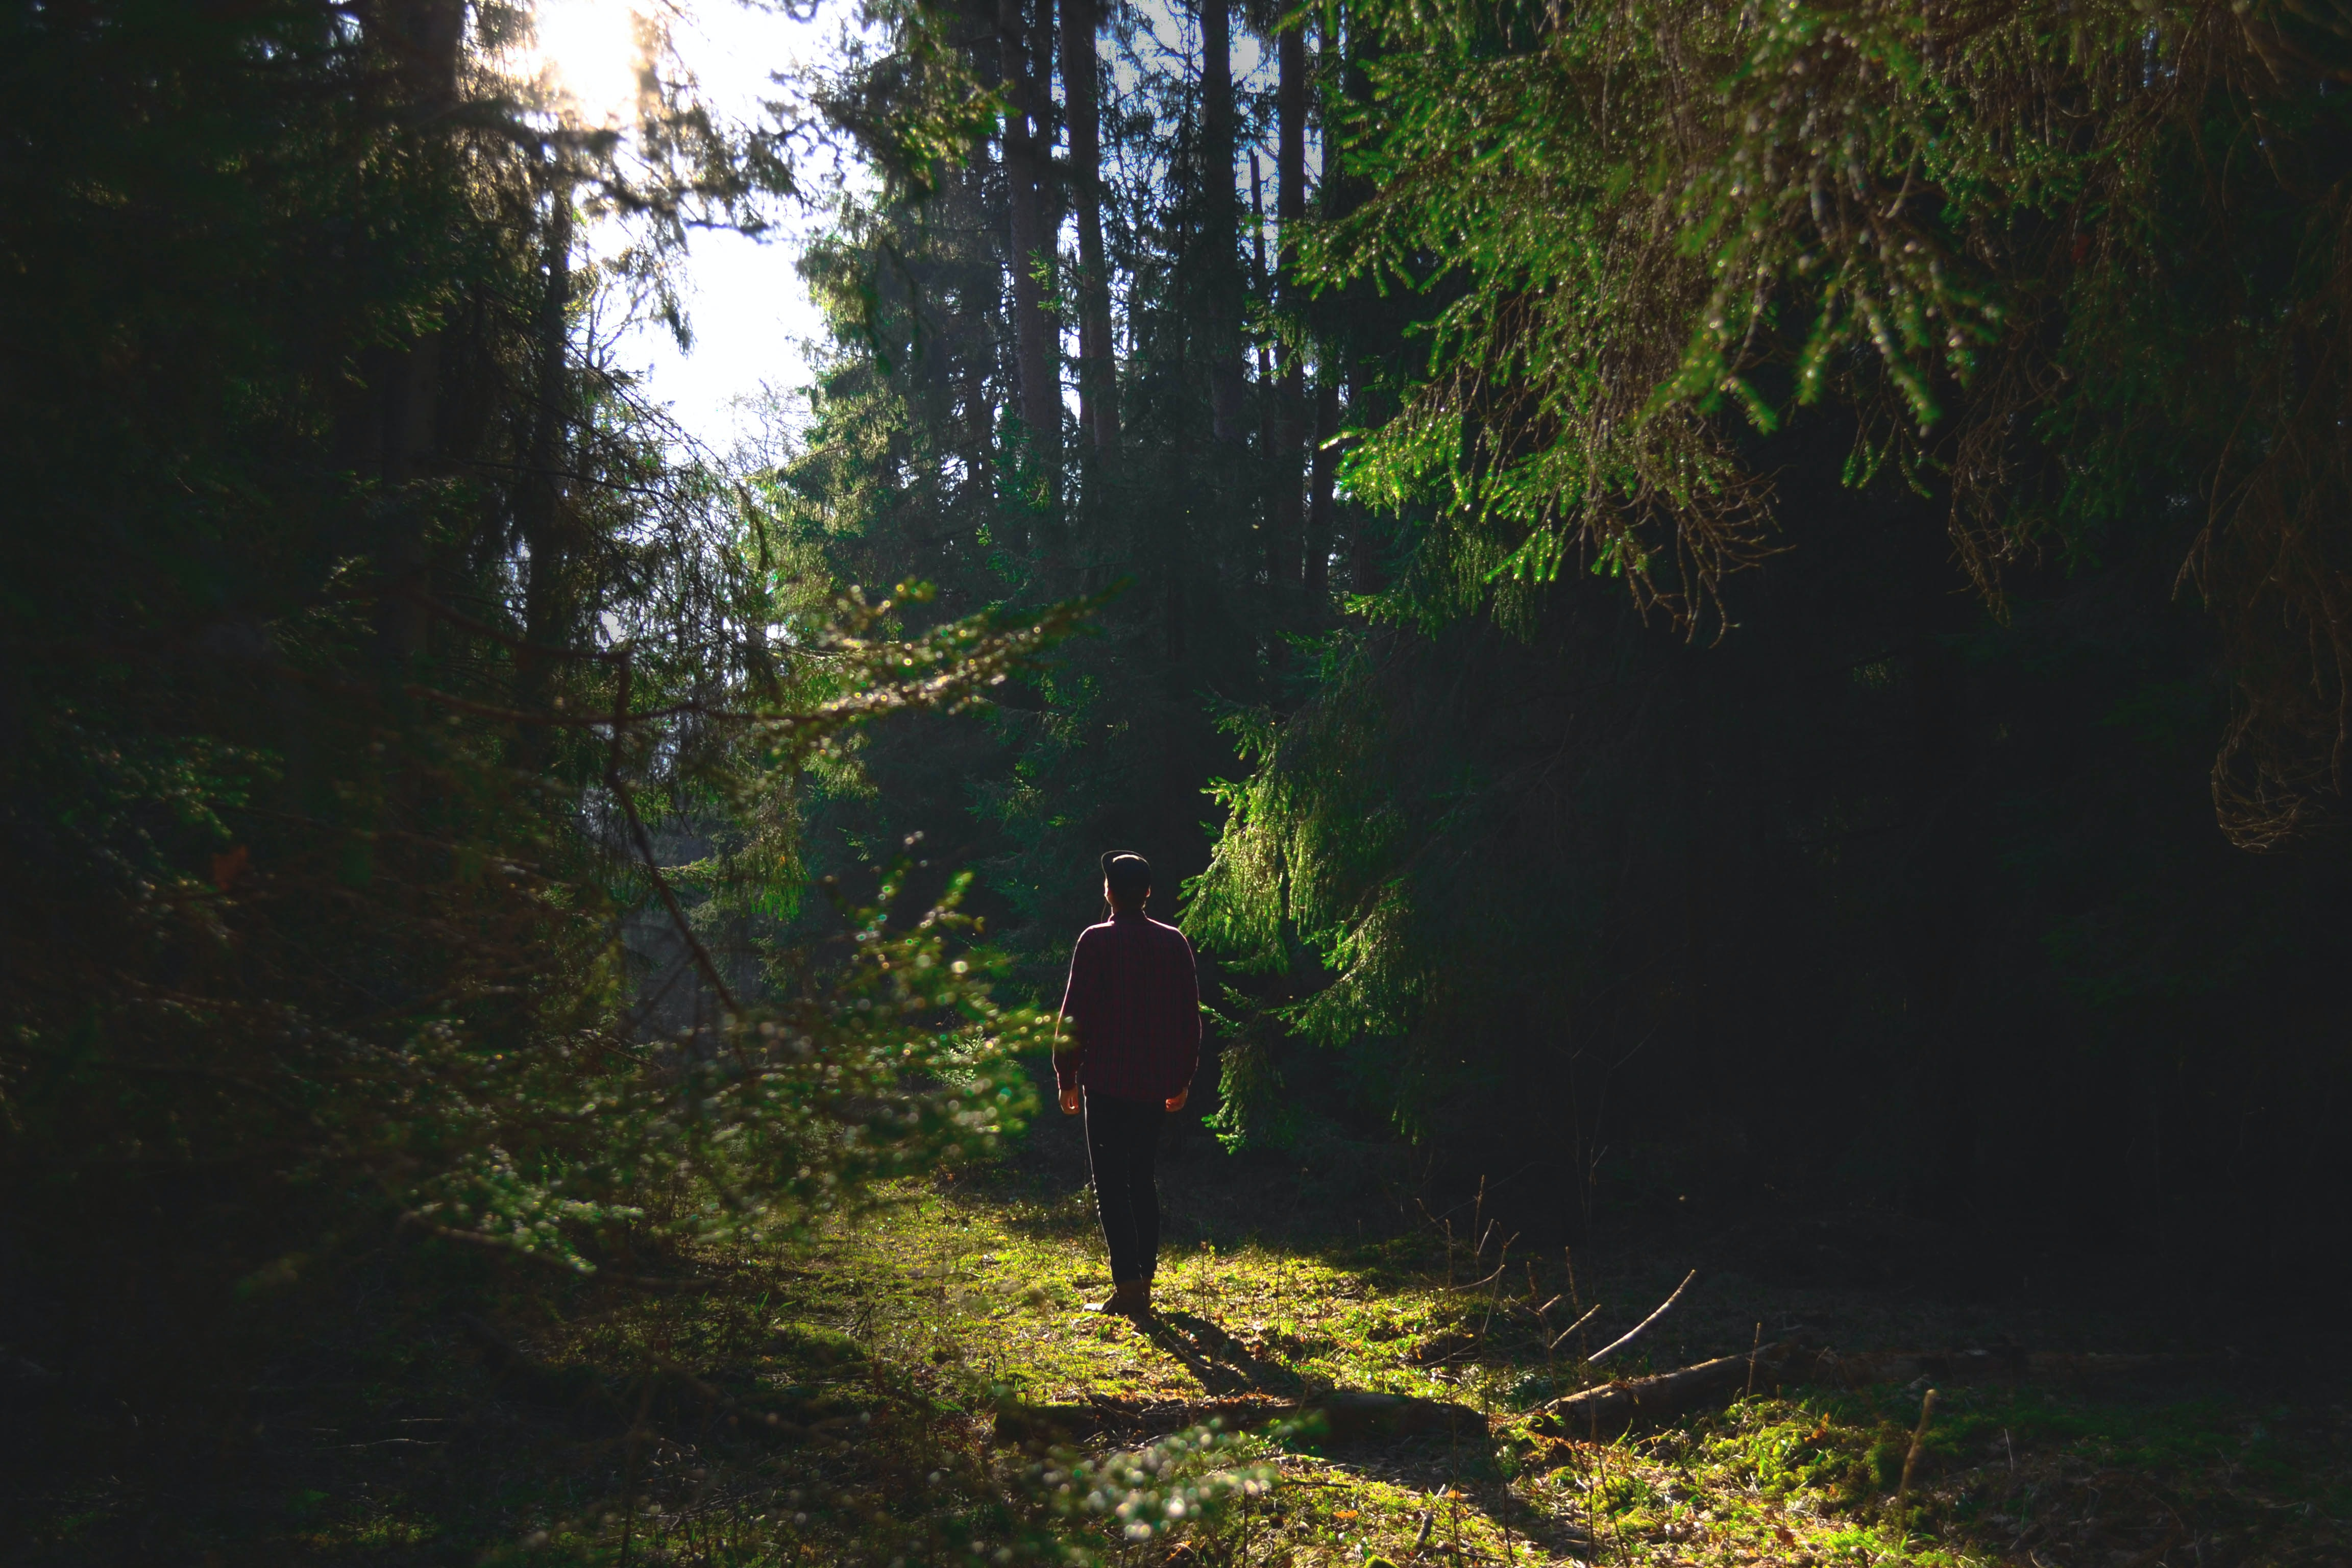 A person and his shadow walking through green foliage in a forest